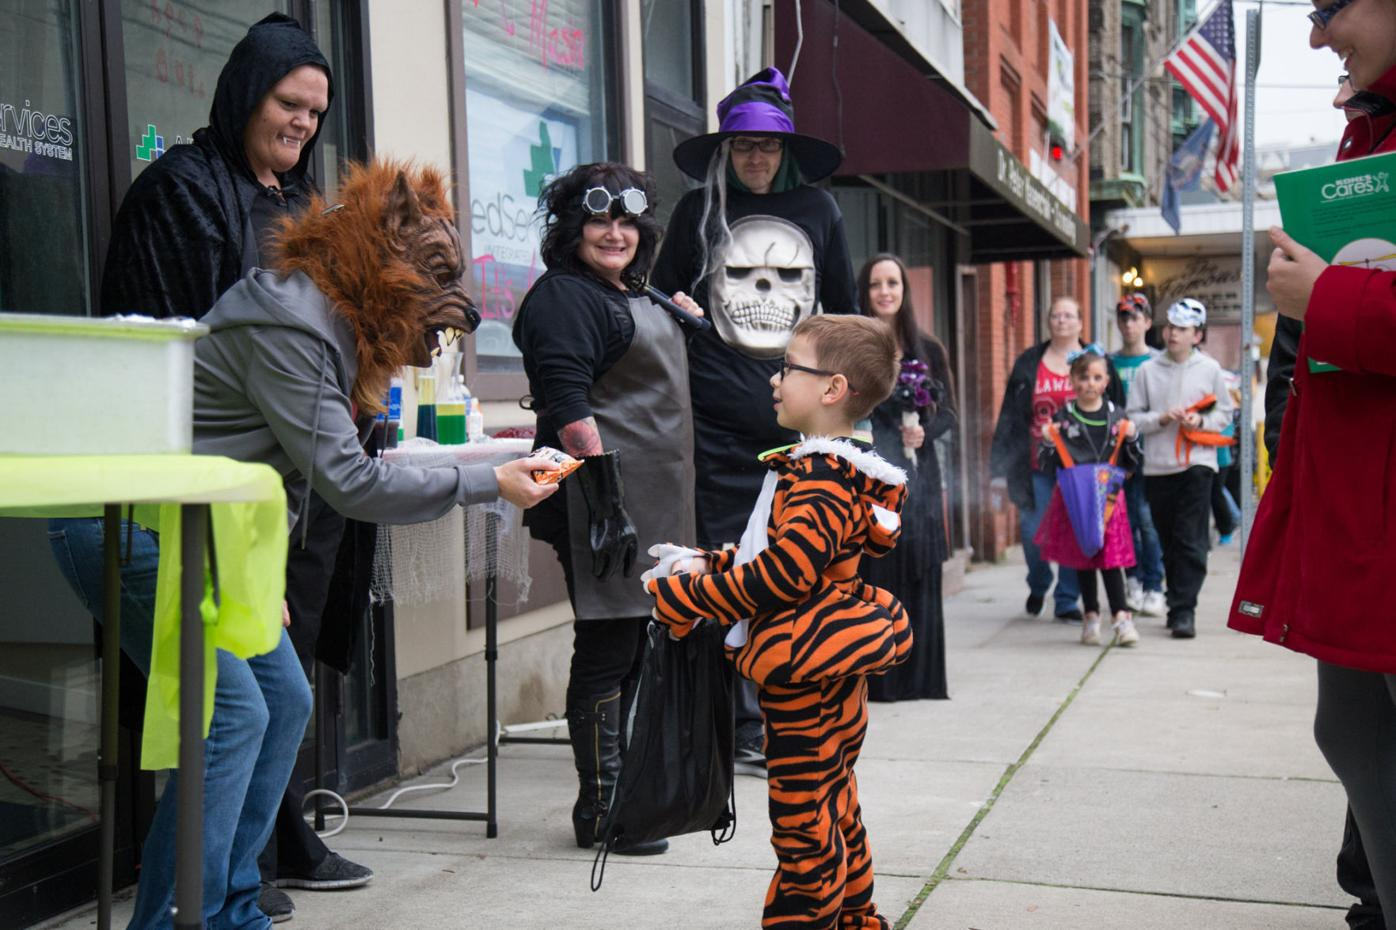 Pottsville Halloween Parade 2020 Safe Trick or Treat in Pottsville canceled; Port Carbon Halloween